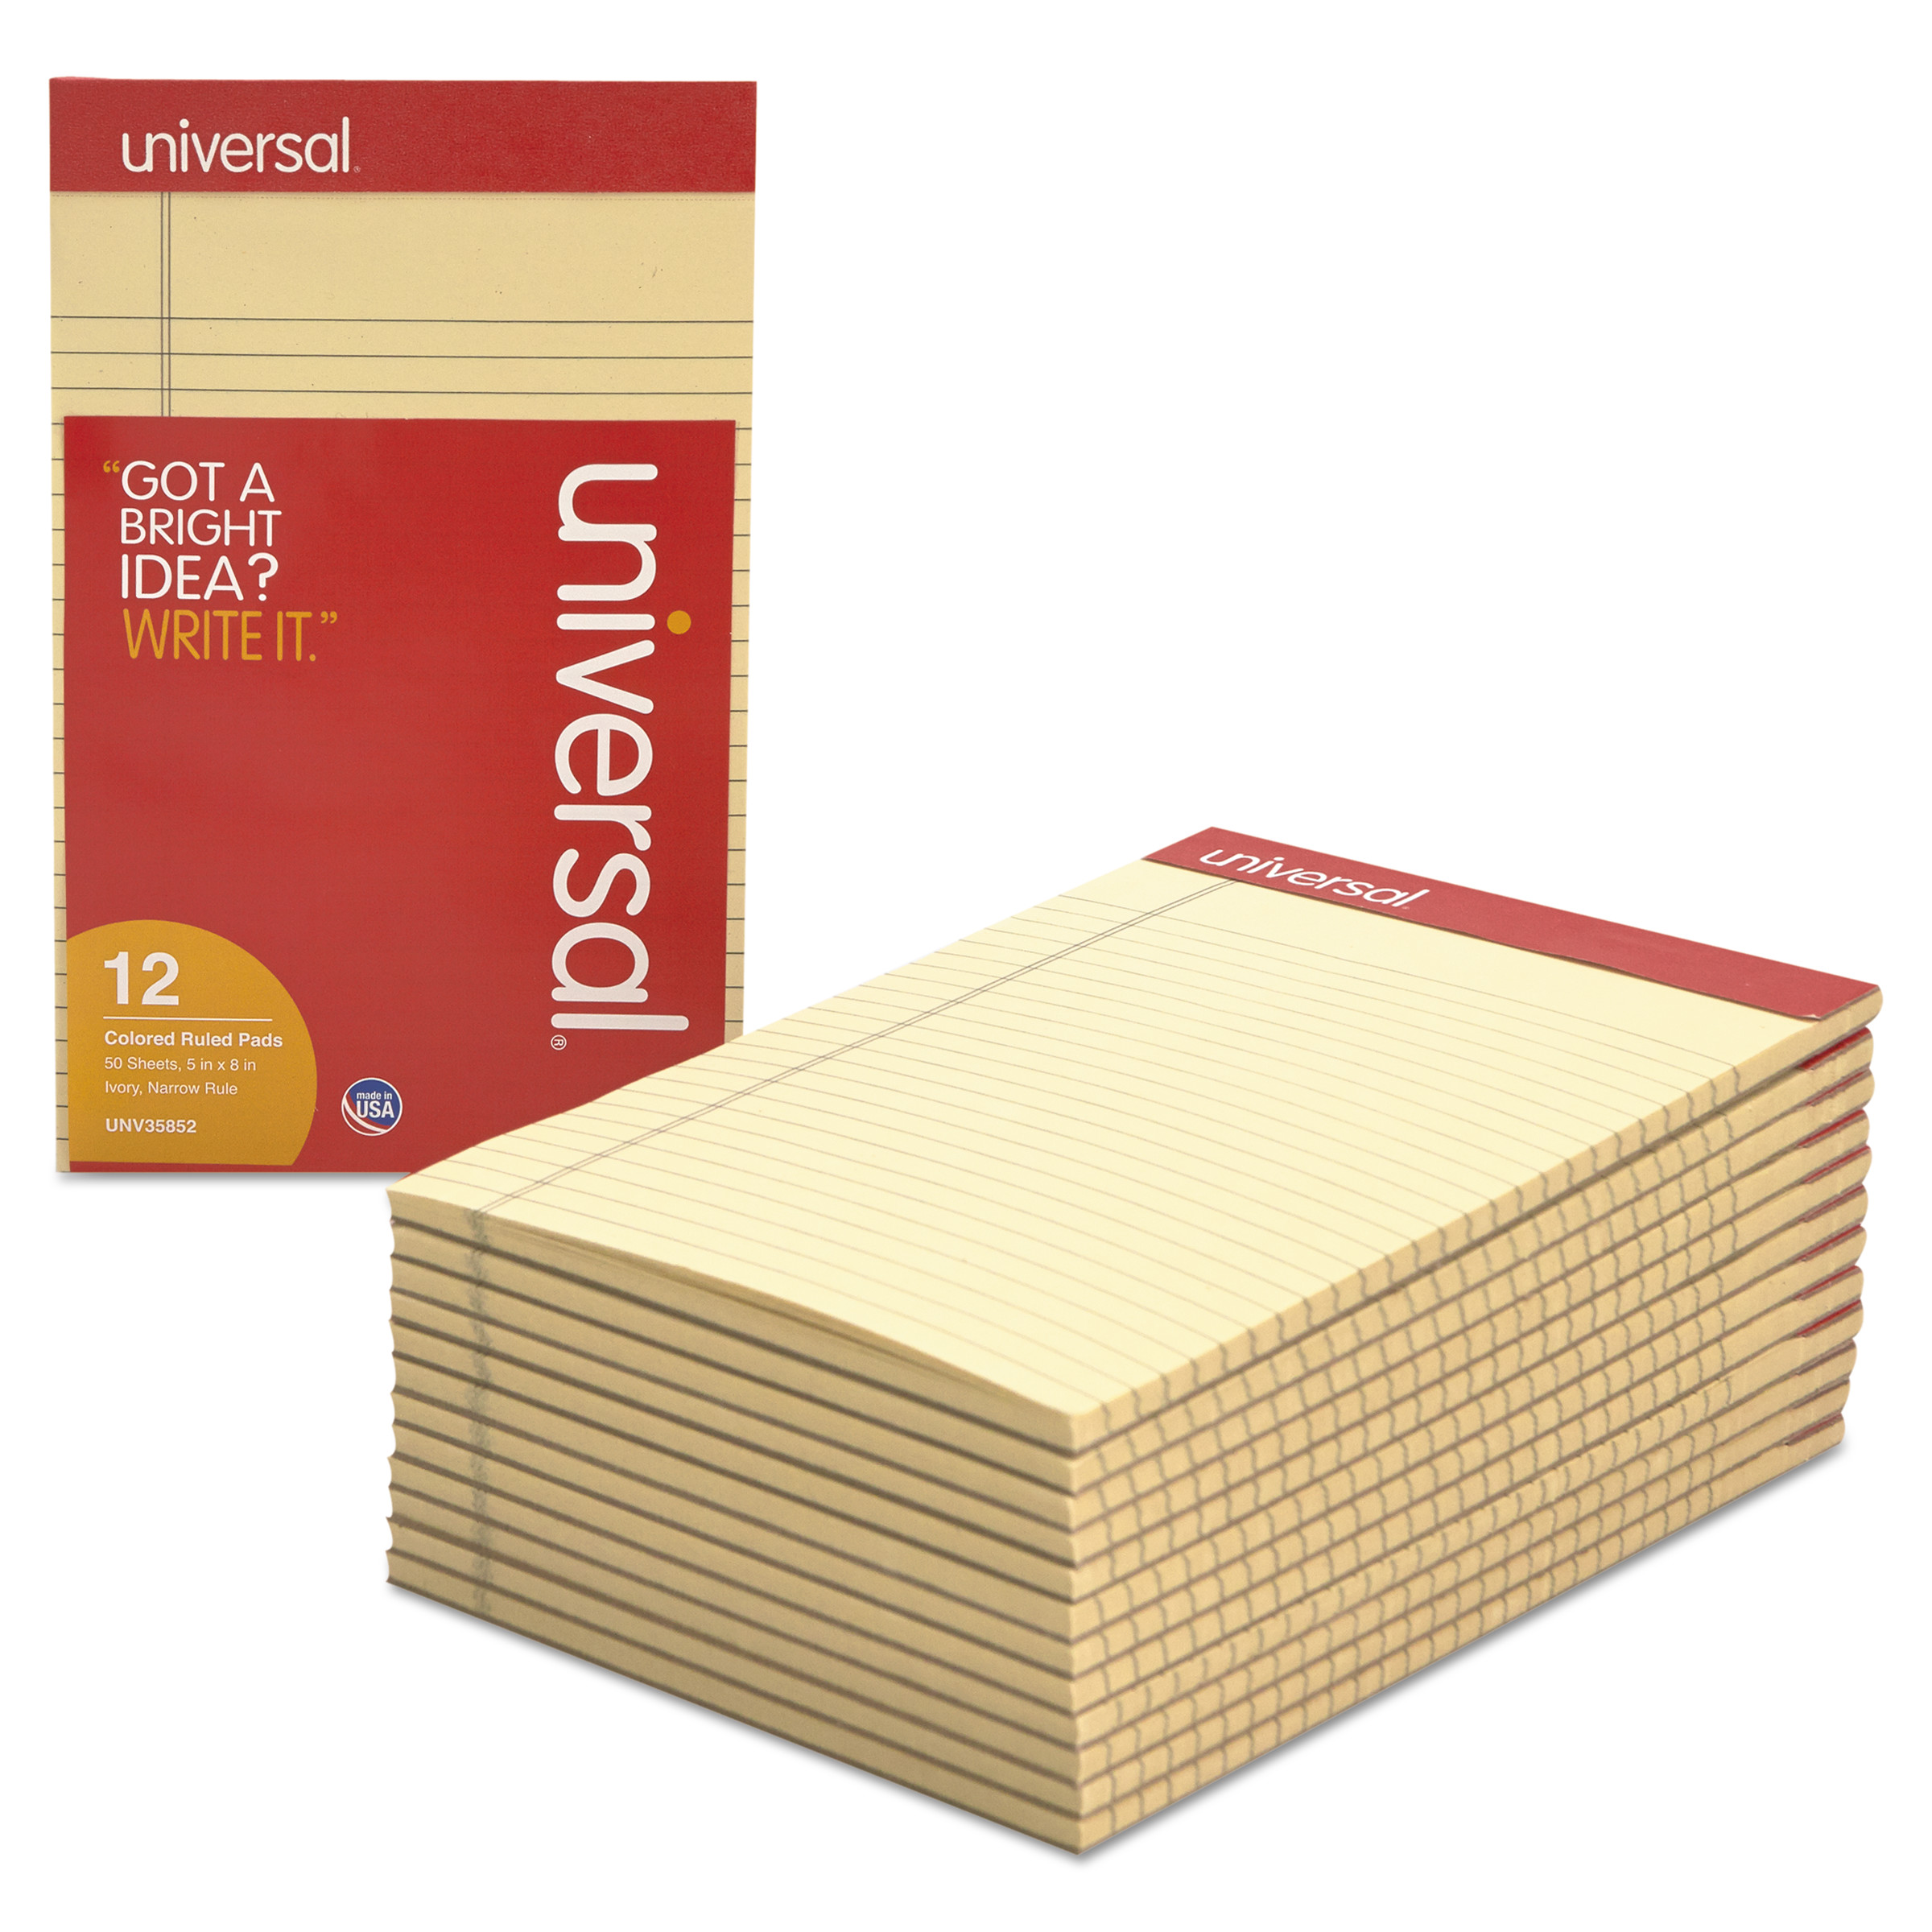 Universal Colored Perforated Note Pads, Narrow Rule, 5 x 8, Ivory, 50 Sheet, Dozen